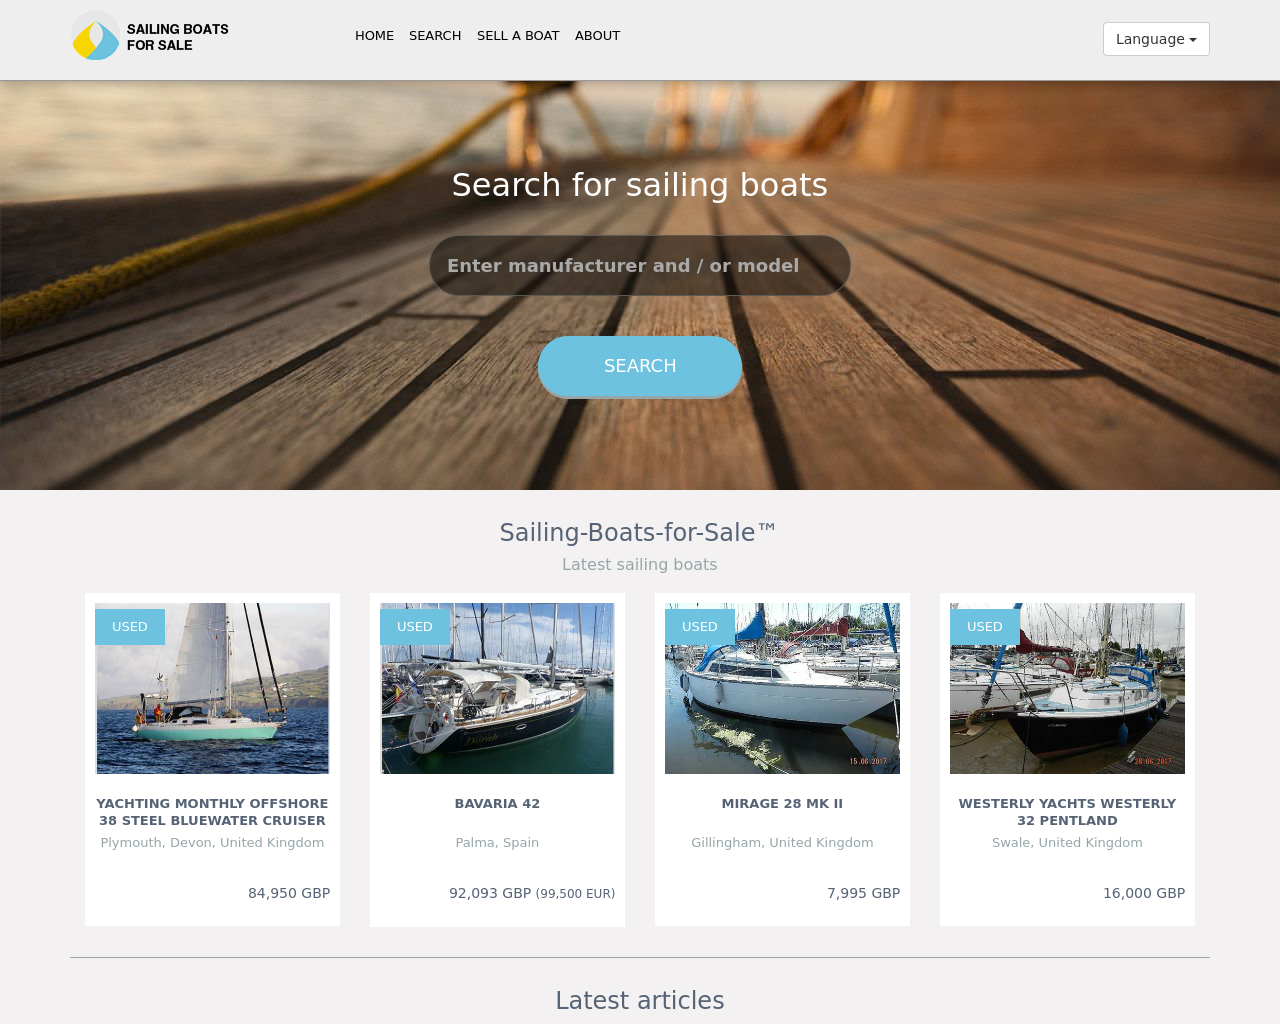 Sailing-Boats-for-Sale-Advertising-Reviews-Pricing